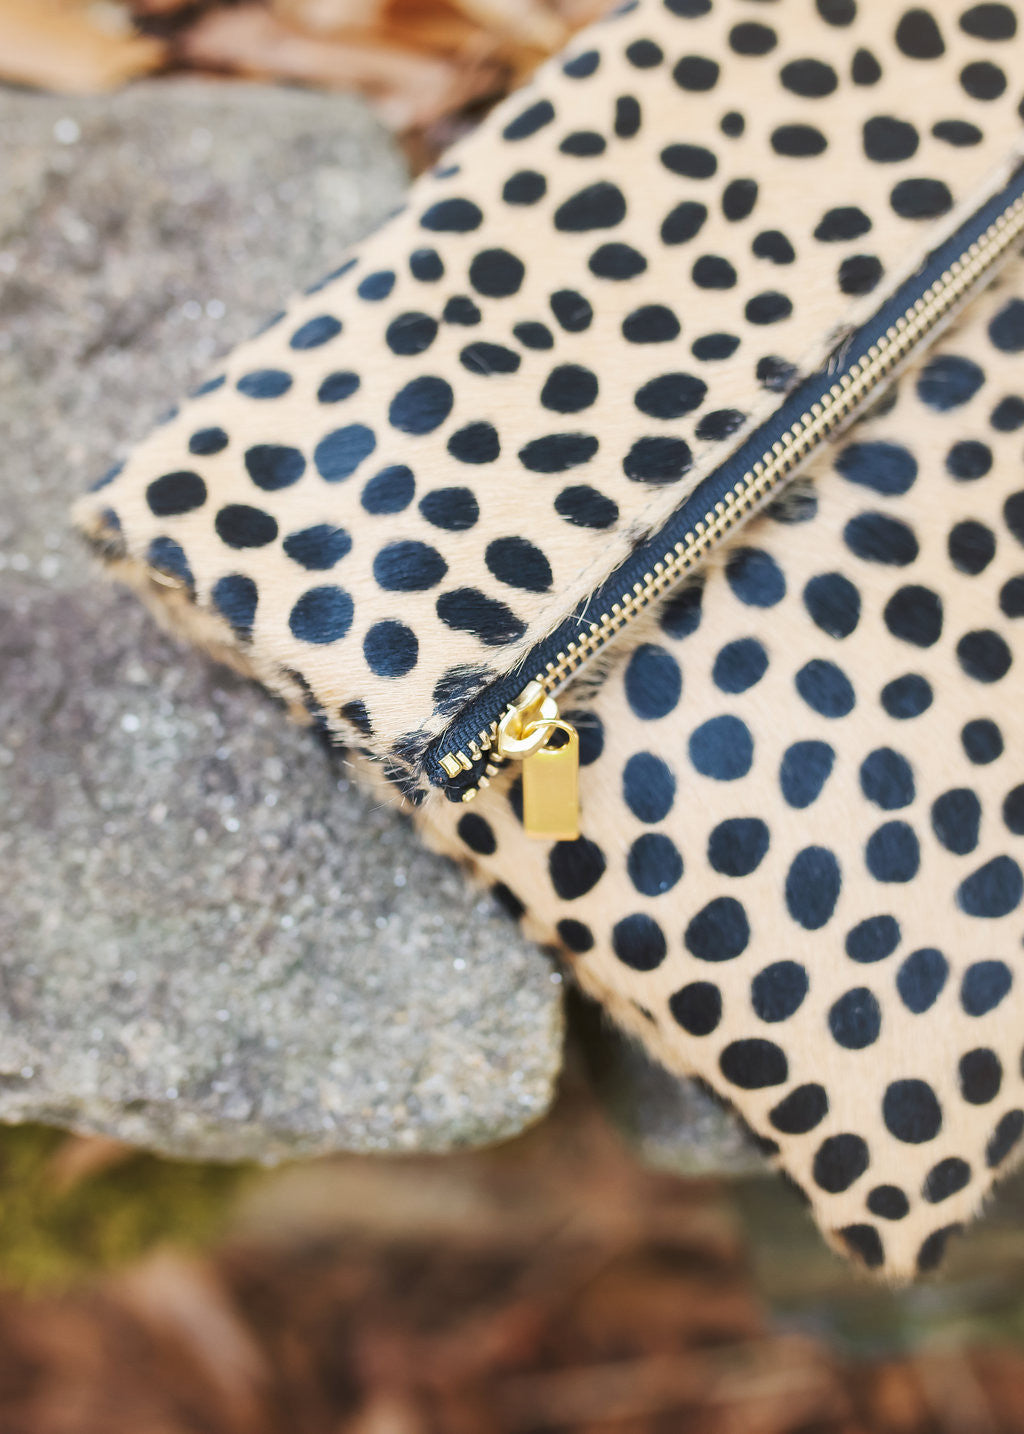 black and camel leopard handbag, Perfect cross body handbag, Molly Jane Handbags, Southern Living Handbags, southern designer handbags, Gifts for her, Holiday Wishlist, leopard cross body handbag, hair on italian leather clutch, leather handbag, The perfect clutch